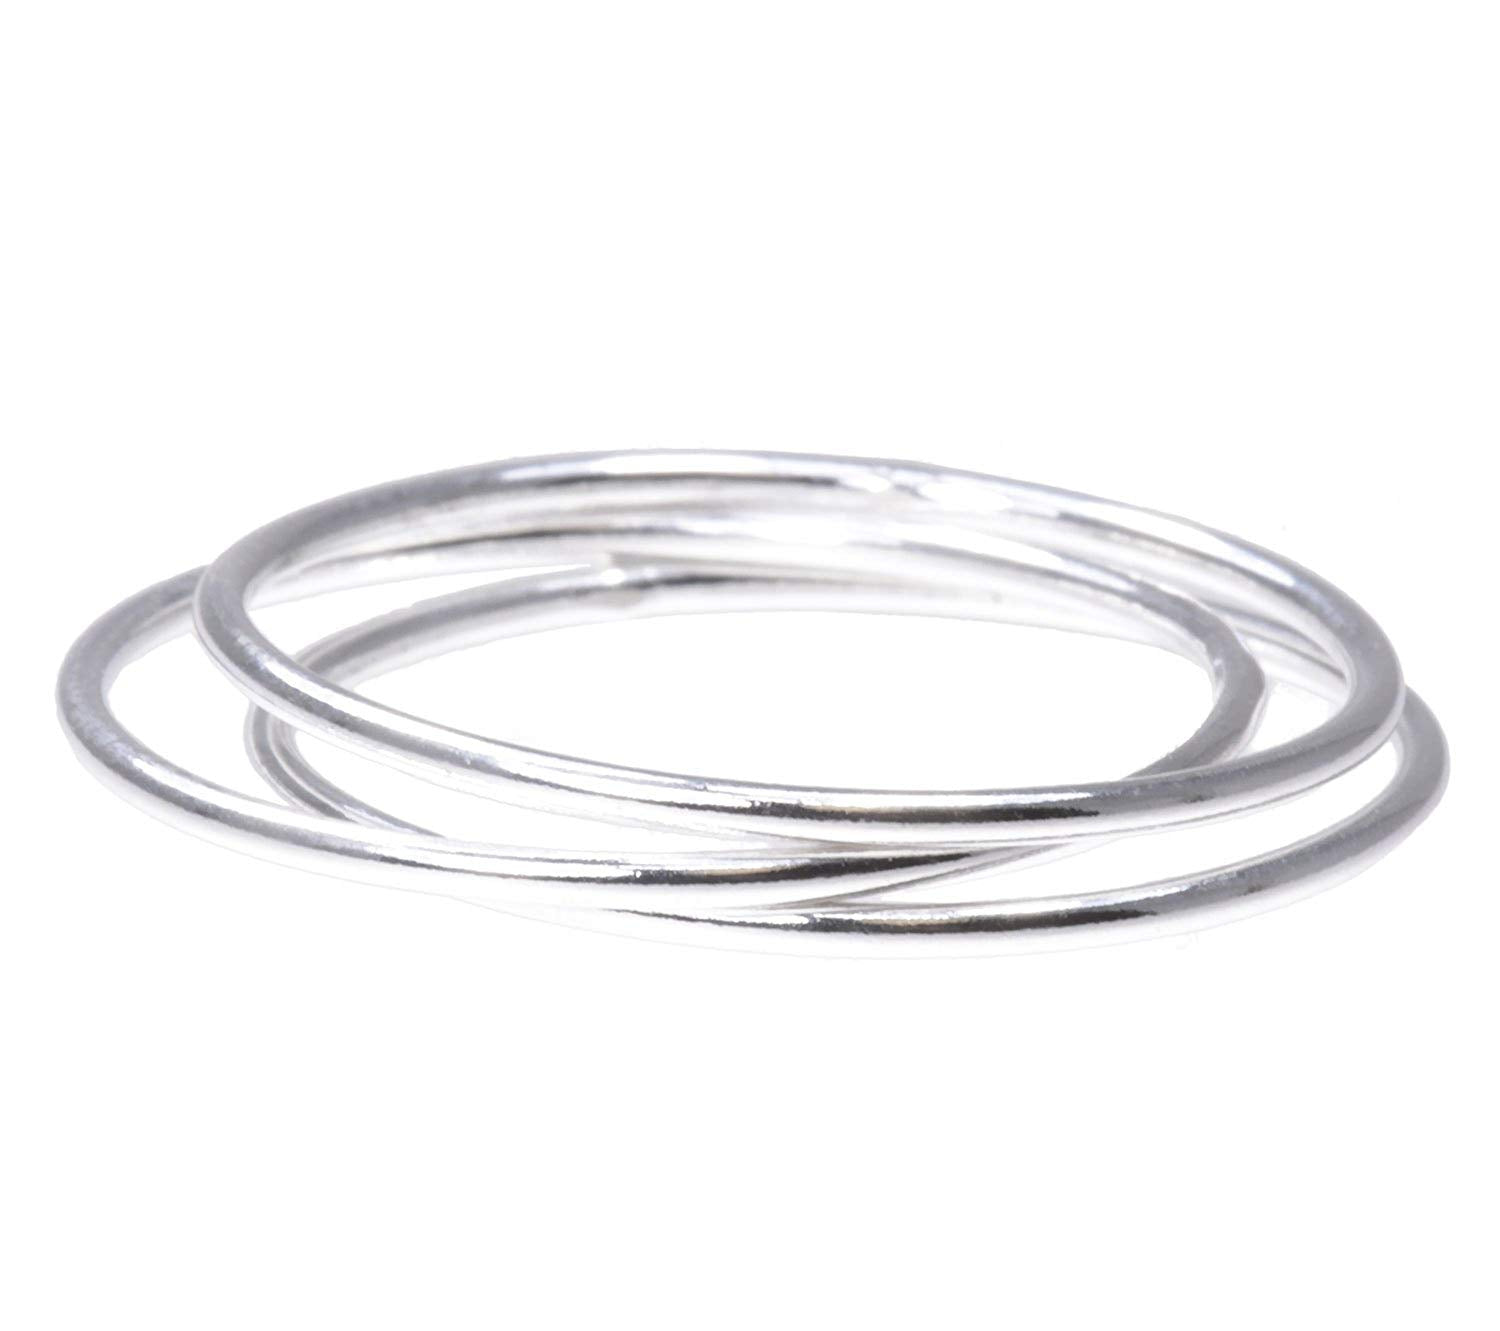 3 Sterling Silver Stacking Rings 1mm Round